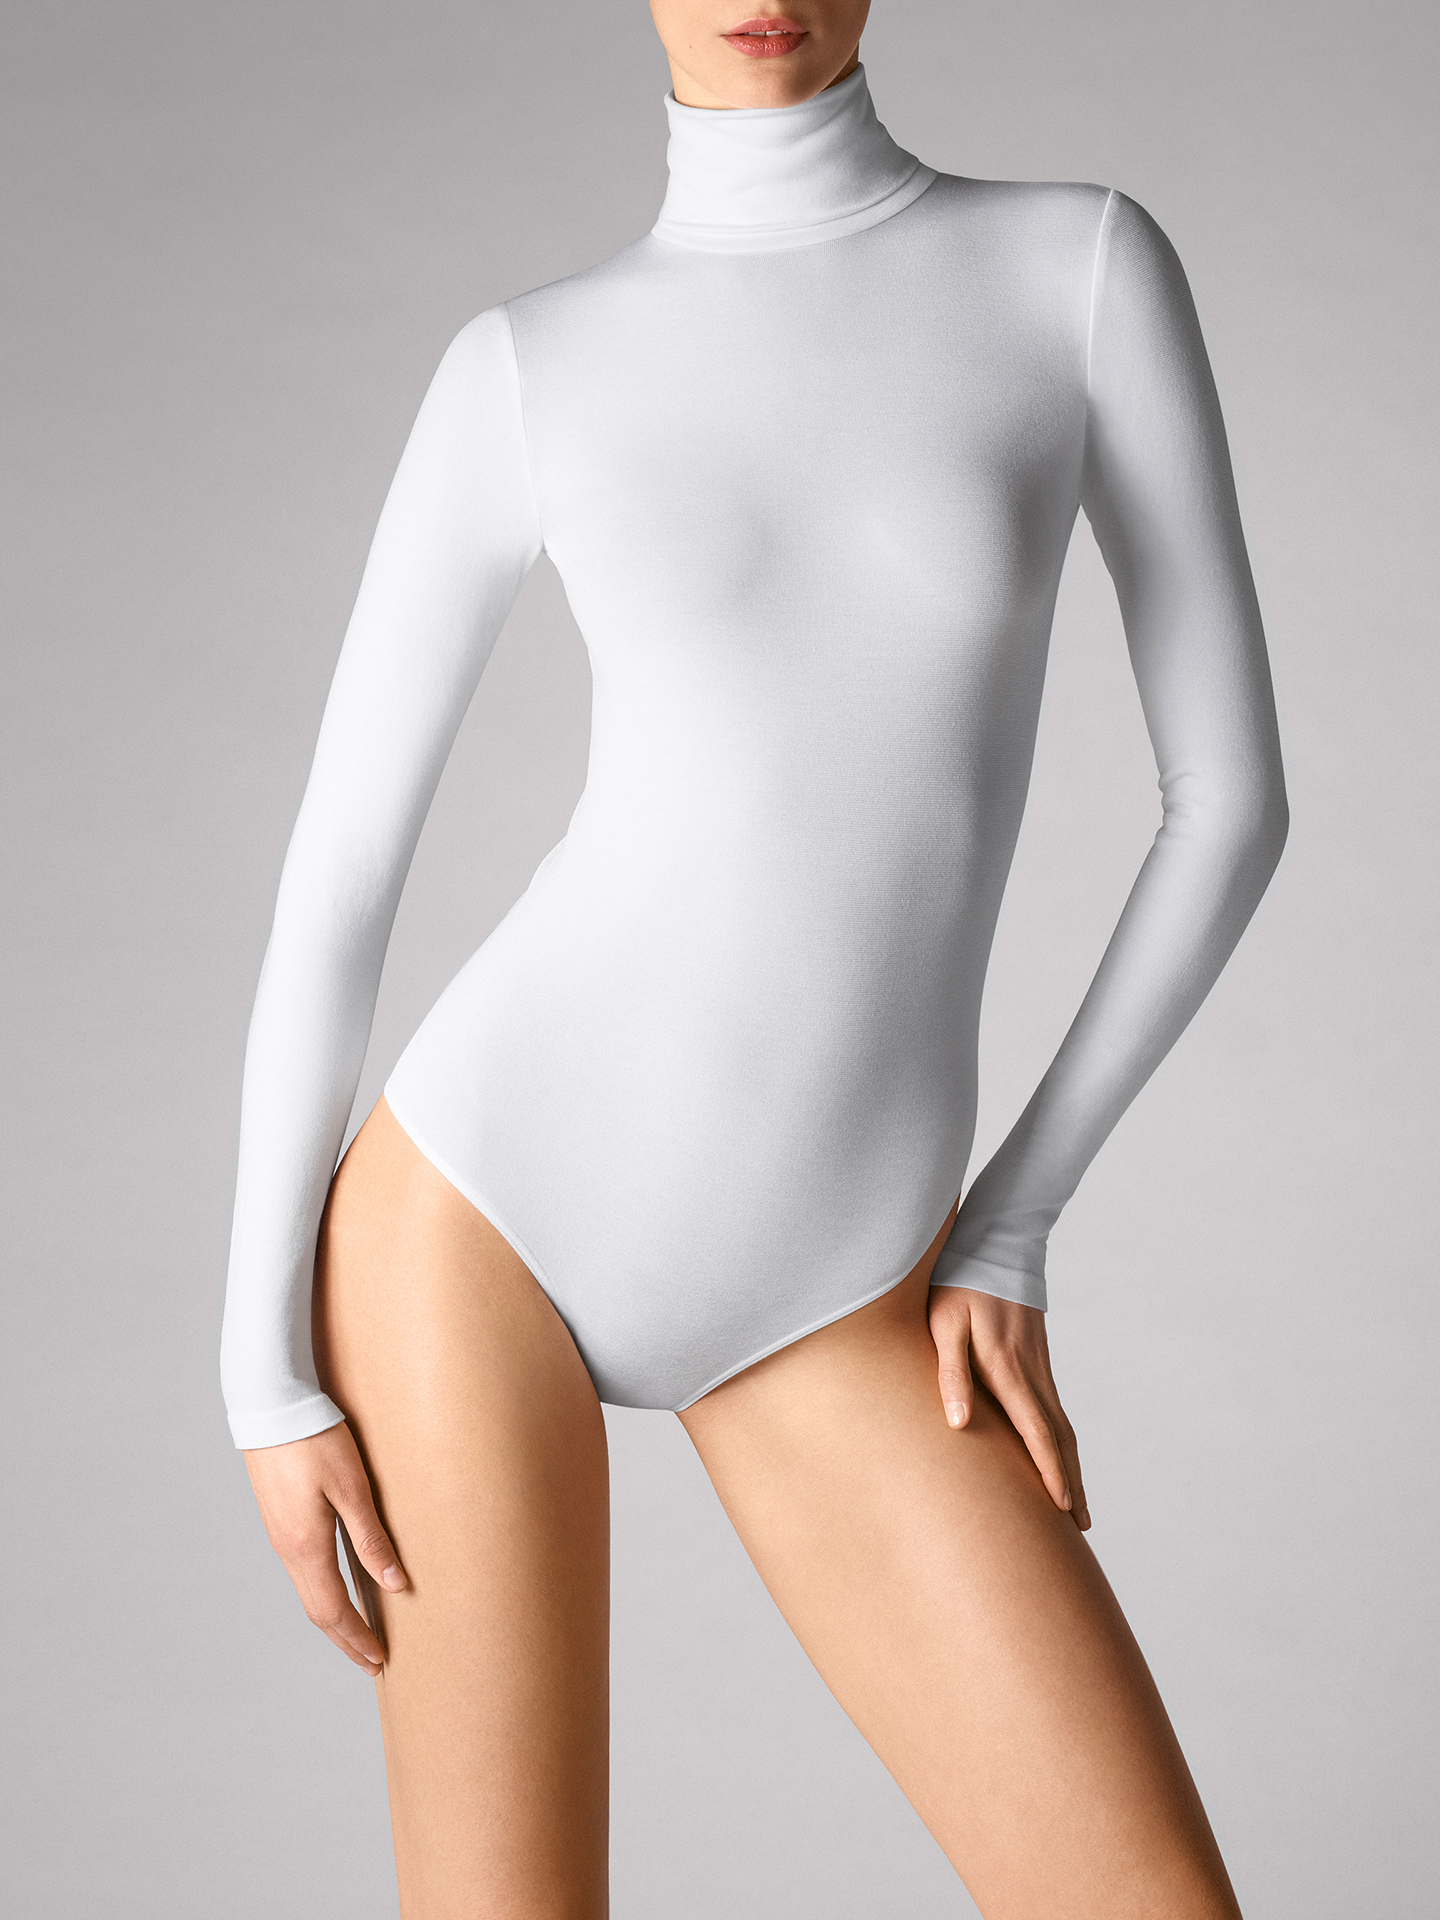 Wolford Apparel & Accessories > Clothing > Bestsellers Colorado Body - 1001 - M